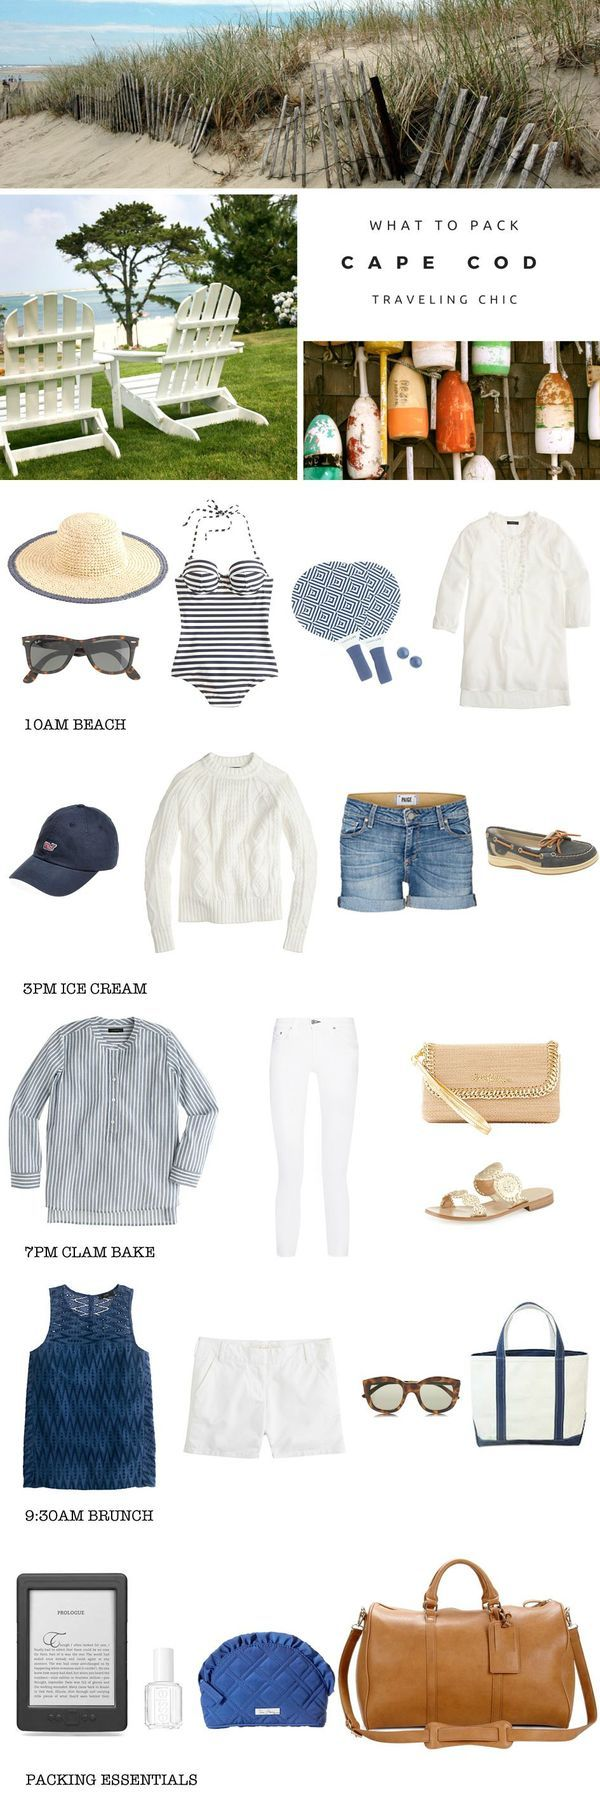 What to pack for a trip to Cape Cod, Massachusetts. The perfect packing list for a trip to New England and the beach. Covers everything you need to know about East Coast travel style.